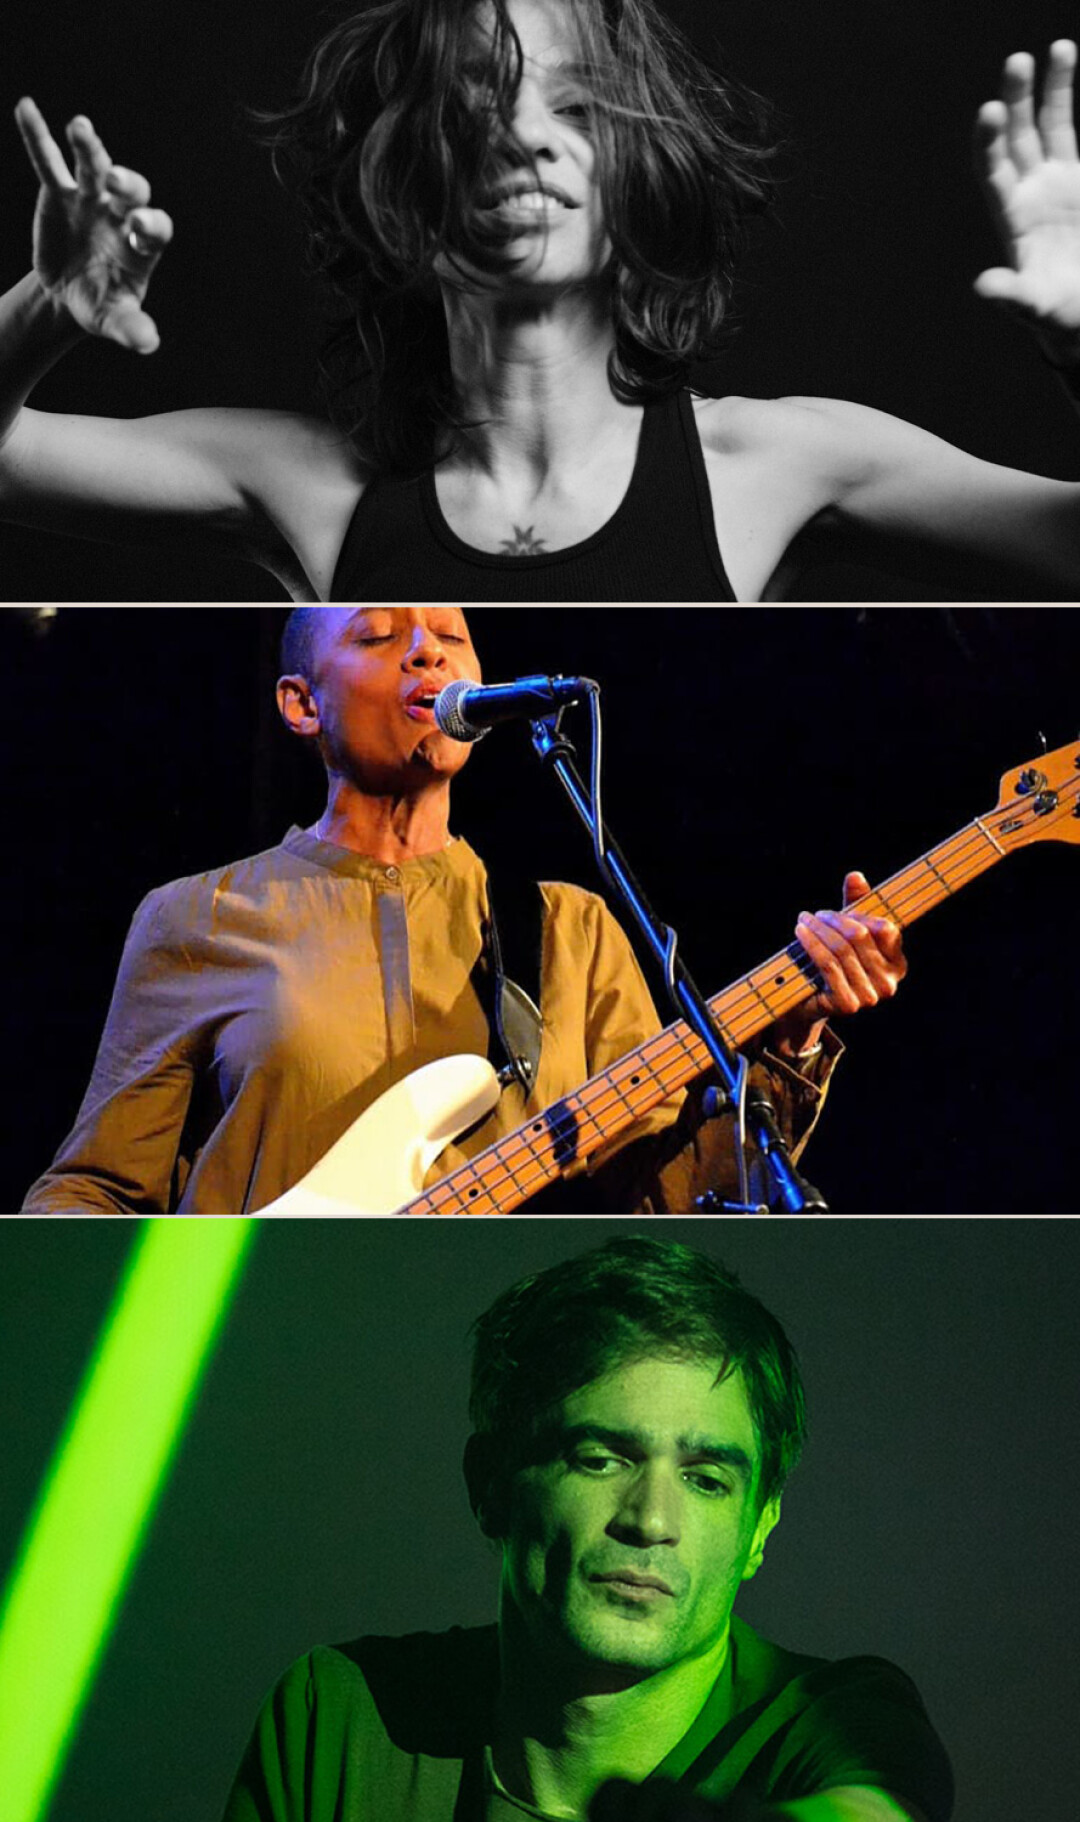 Top down: Ani DiFranco, Gail Ann Dorsey, Jon Hopkins